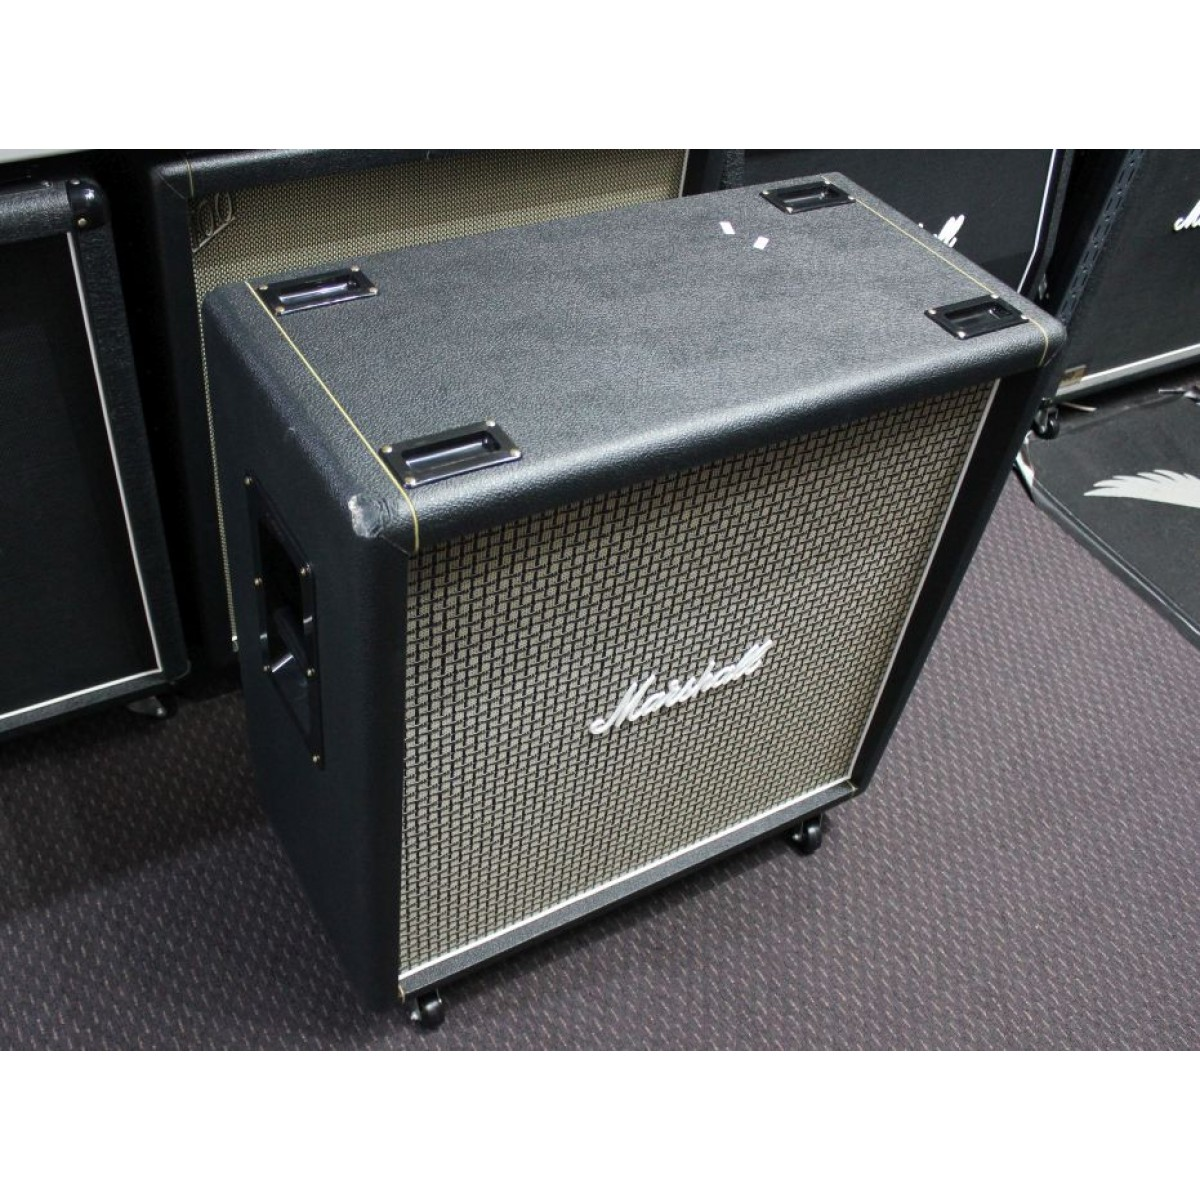 marshall mc 1960bx 100w 4x12 classic straight guitar speaker cabinet cosmetic shop damage. Black Bedroom Furniture Sets. Home Design Ideas